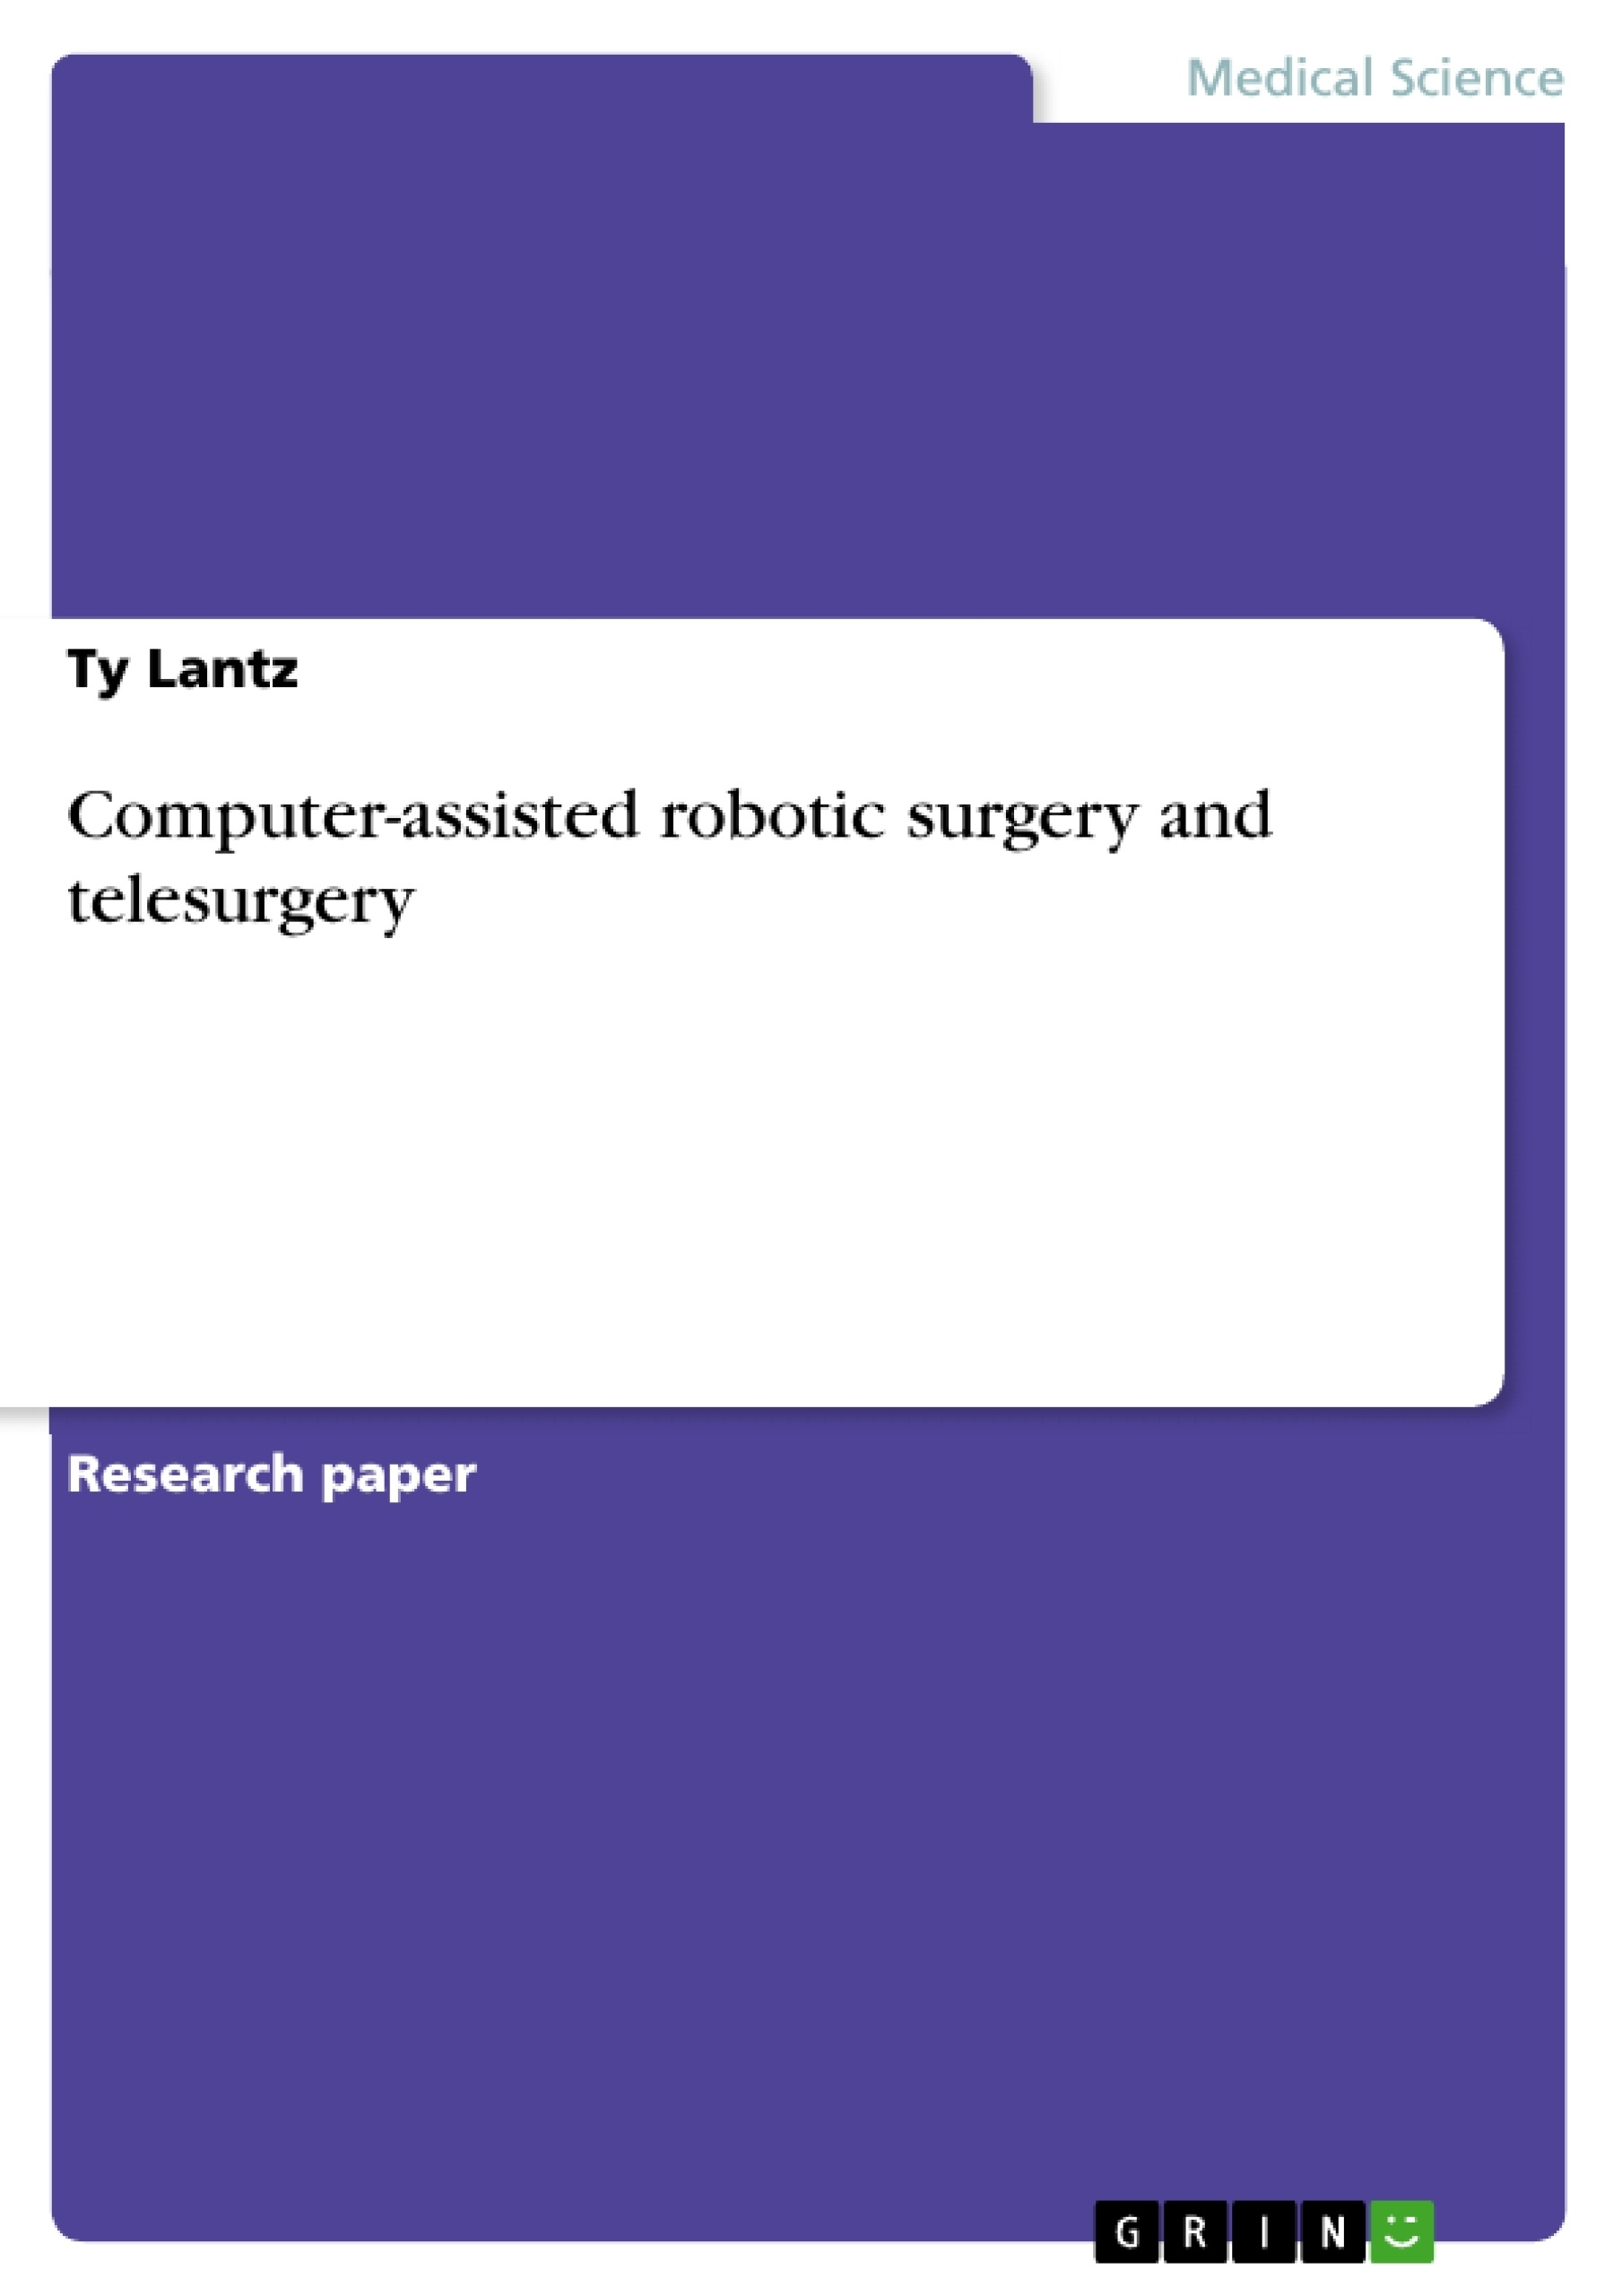 research paper on robotic surgery